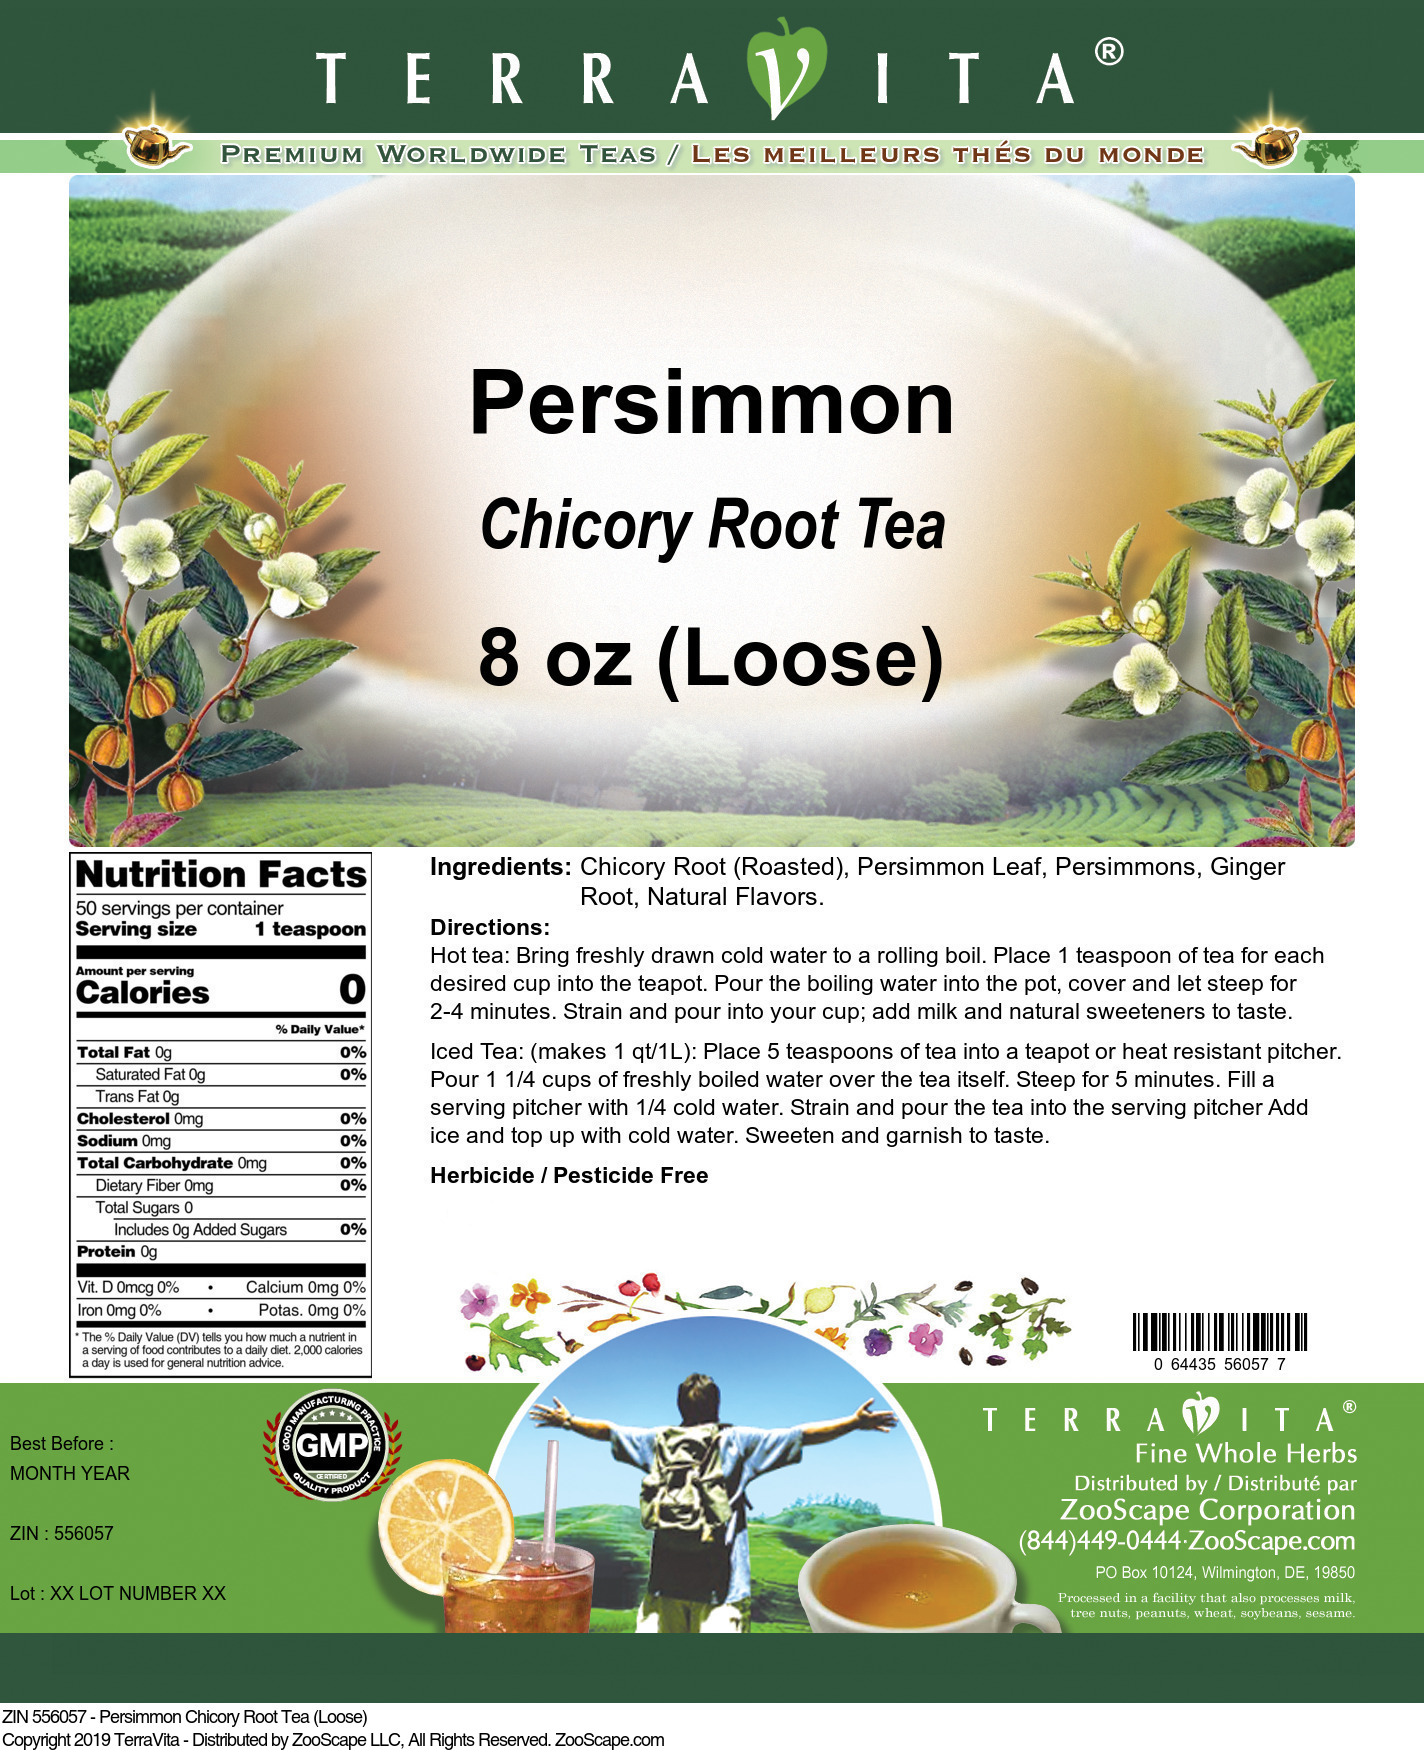 Persimmon Chicory Root Tea (Loose)